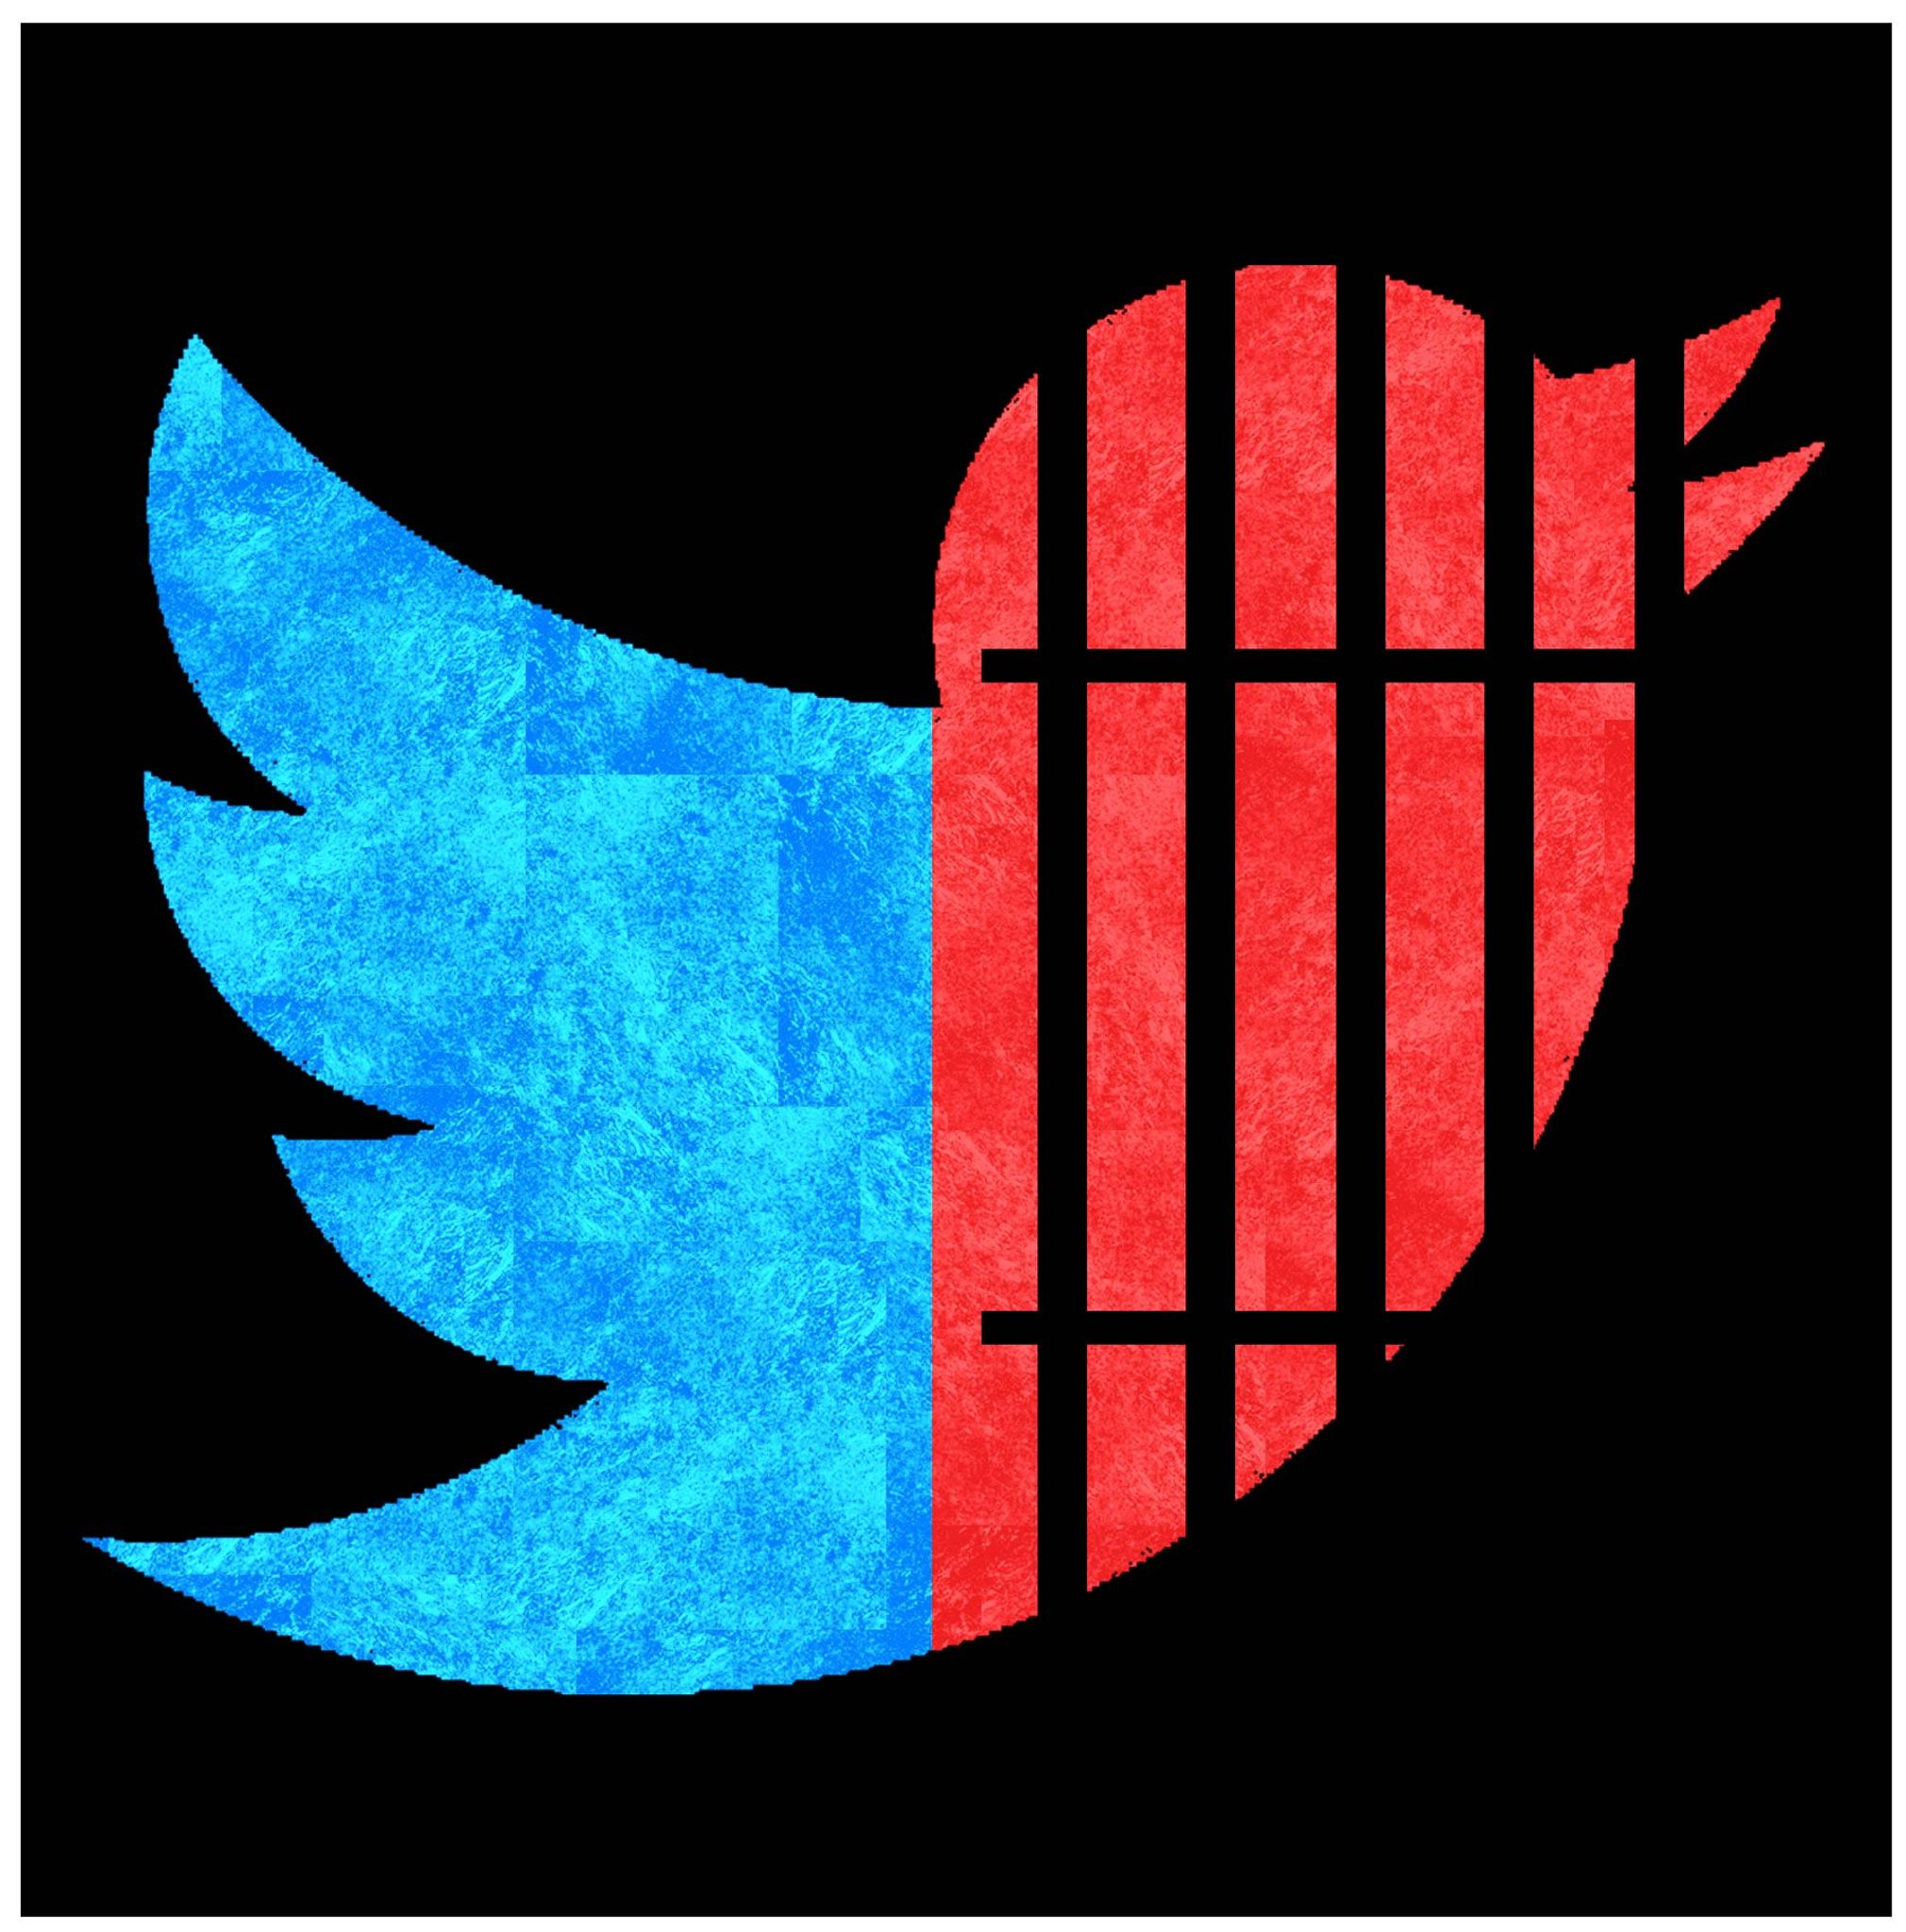 A 'Twitter mob' is as phony as their outrage